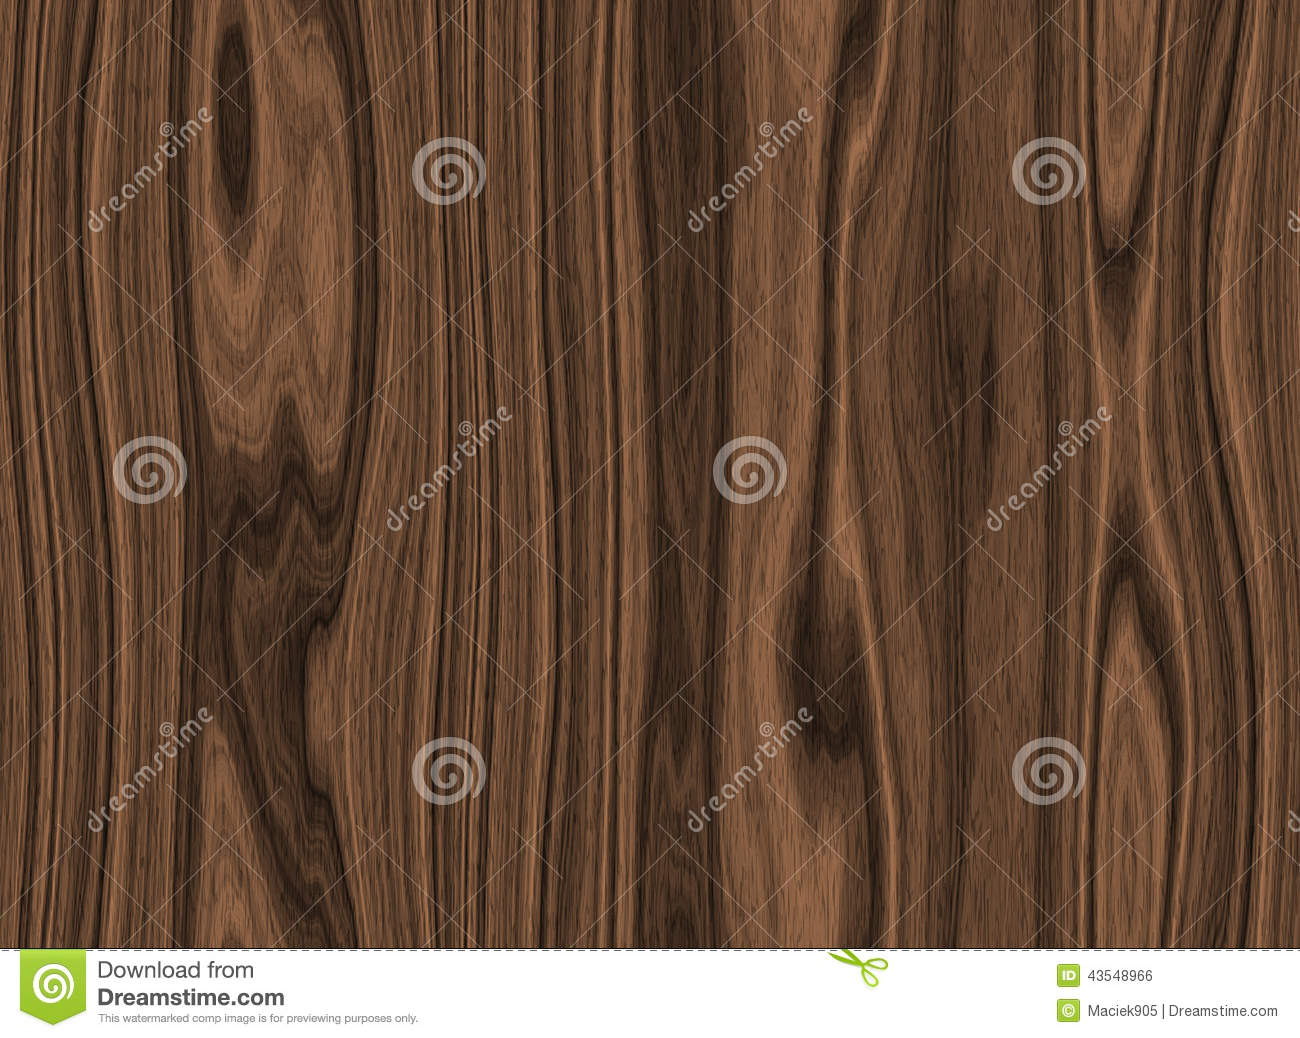 Seamless light wood pattern texture. Endless texture can be used for wallpaper, pattern fills, web page background,surface texture